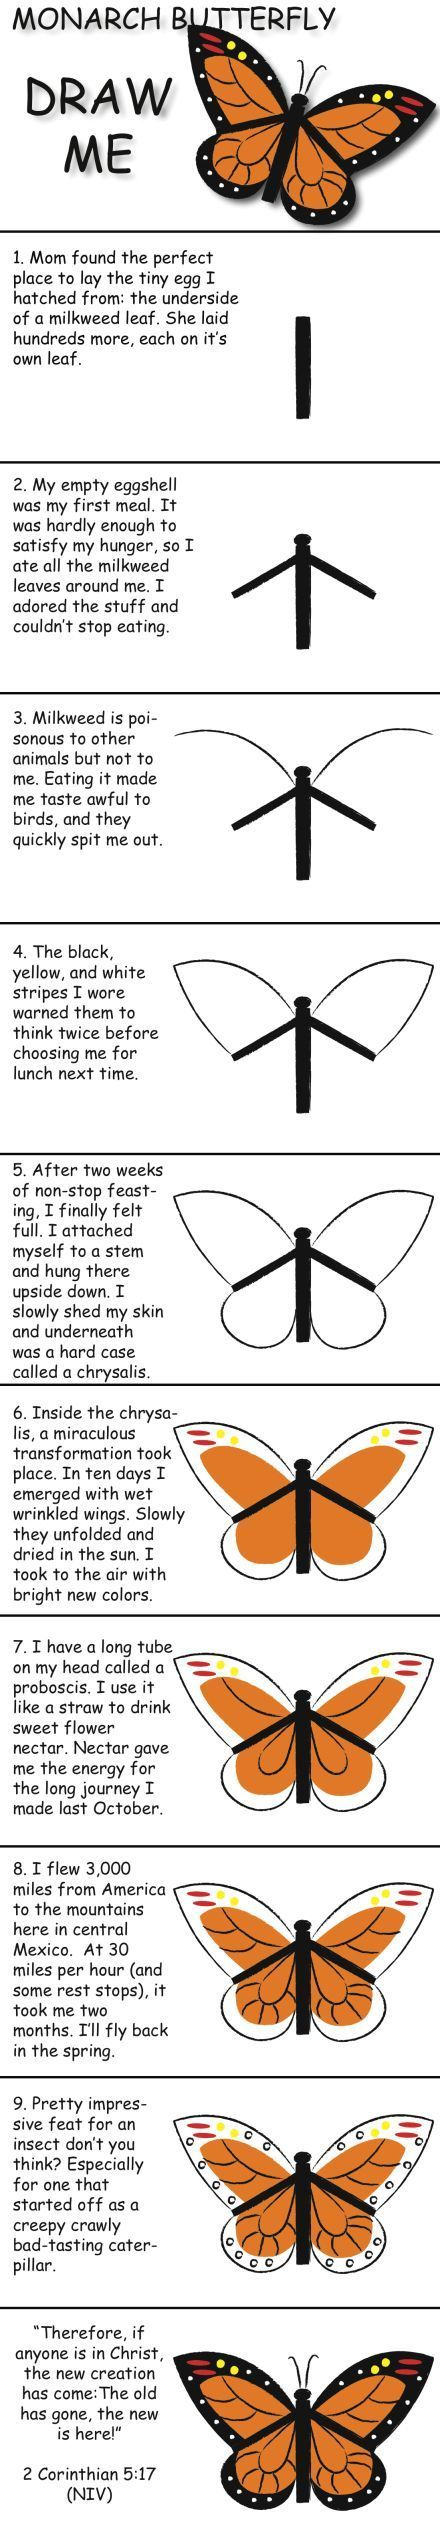 Draw a Monarch butterfly in 10 easy steps and learn fun facts about its life. © 2103 Marty Nystrom